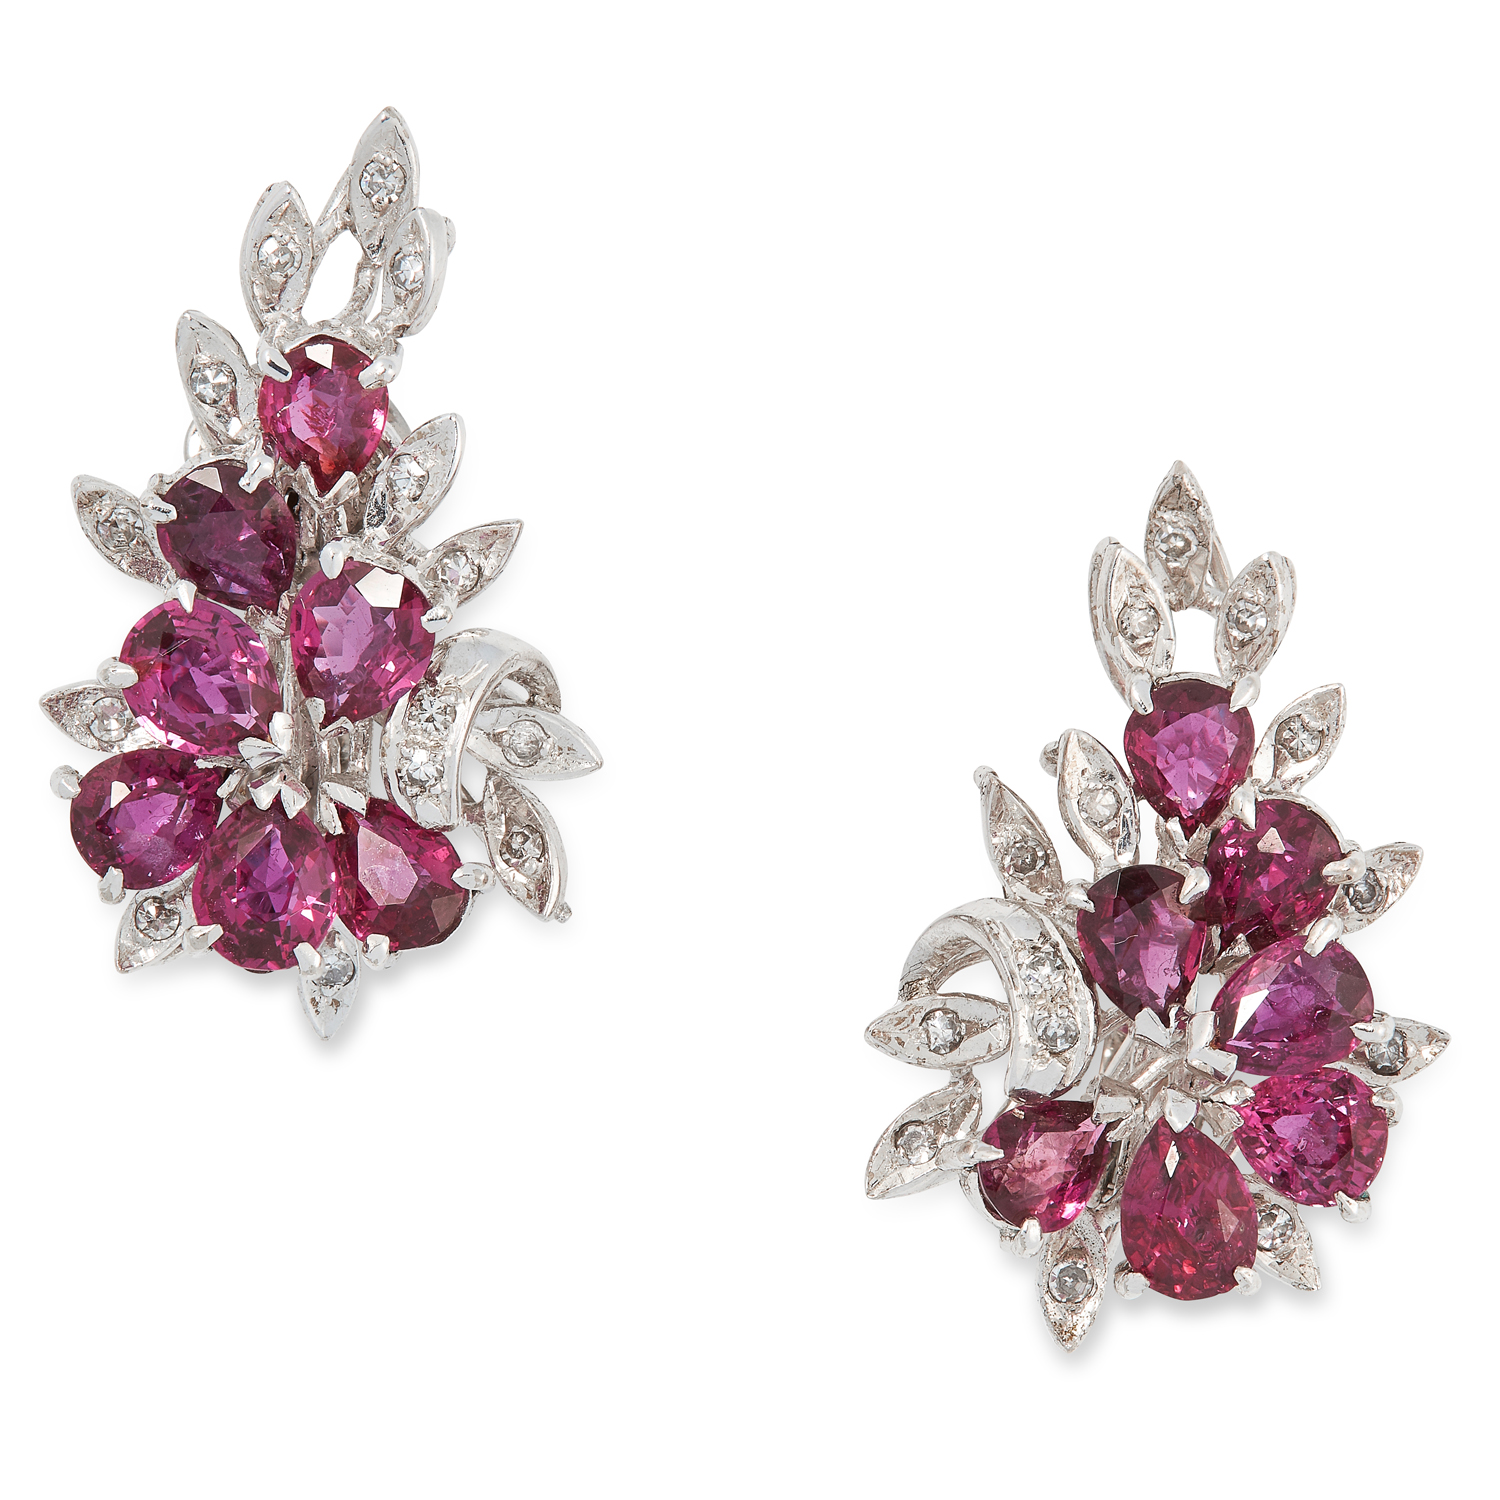 A PAIR OF RUBY AND DIAMOND CLUSTER EARRINGS, CIRCA 1950 in foliate design set with pear cut rubies